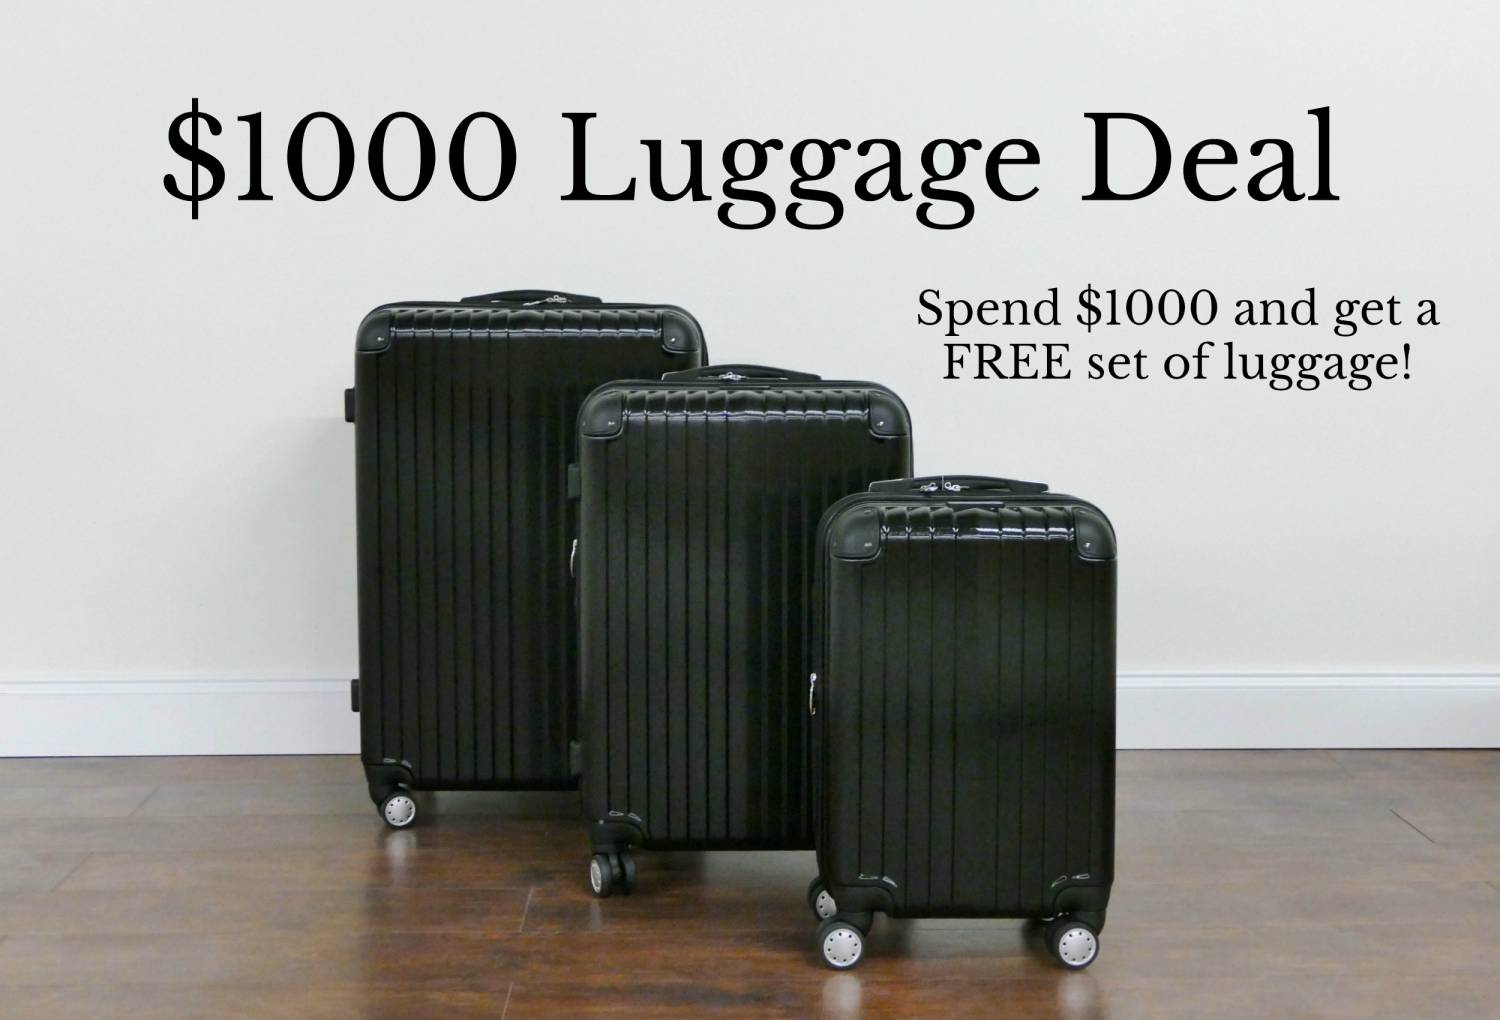 luggage deal